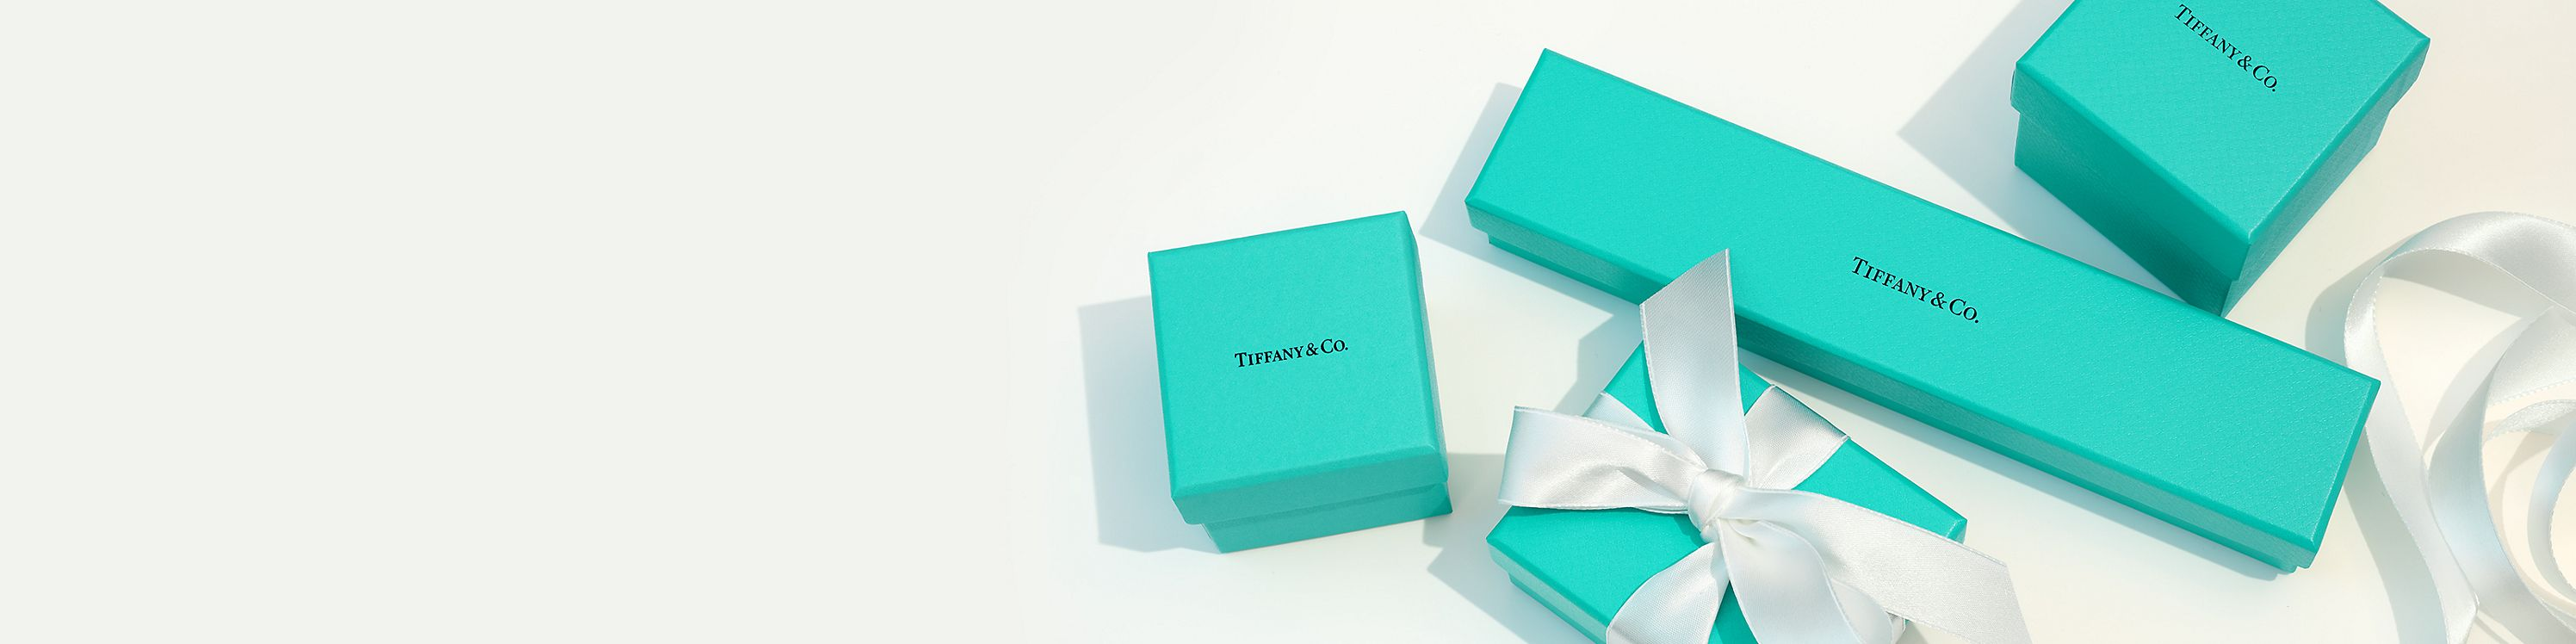 15e422abdc417 Gifts $250 & Under | Tiffany & Co.